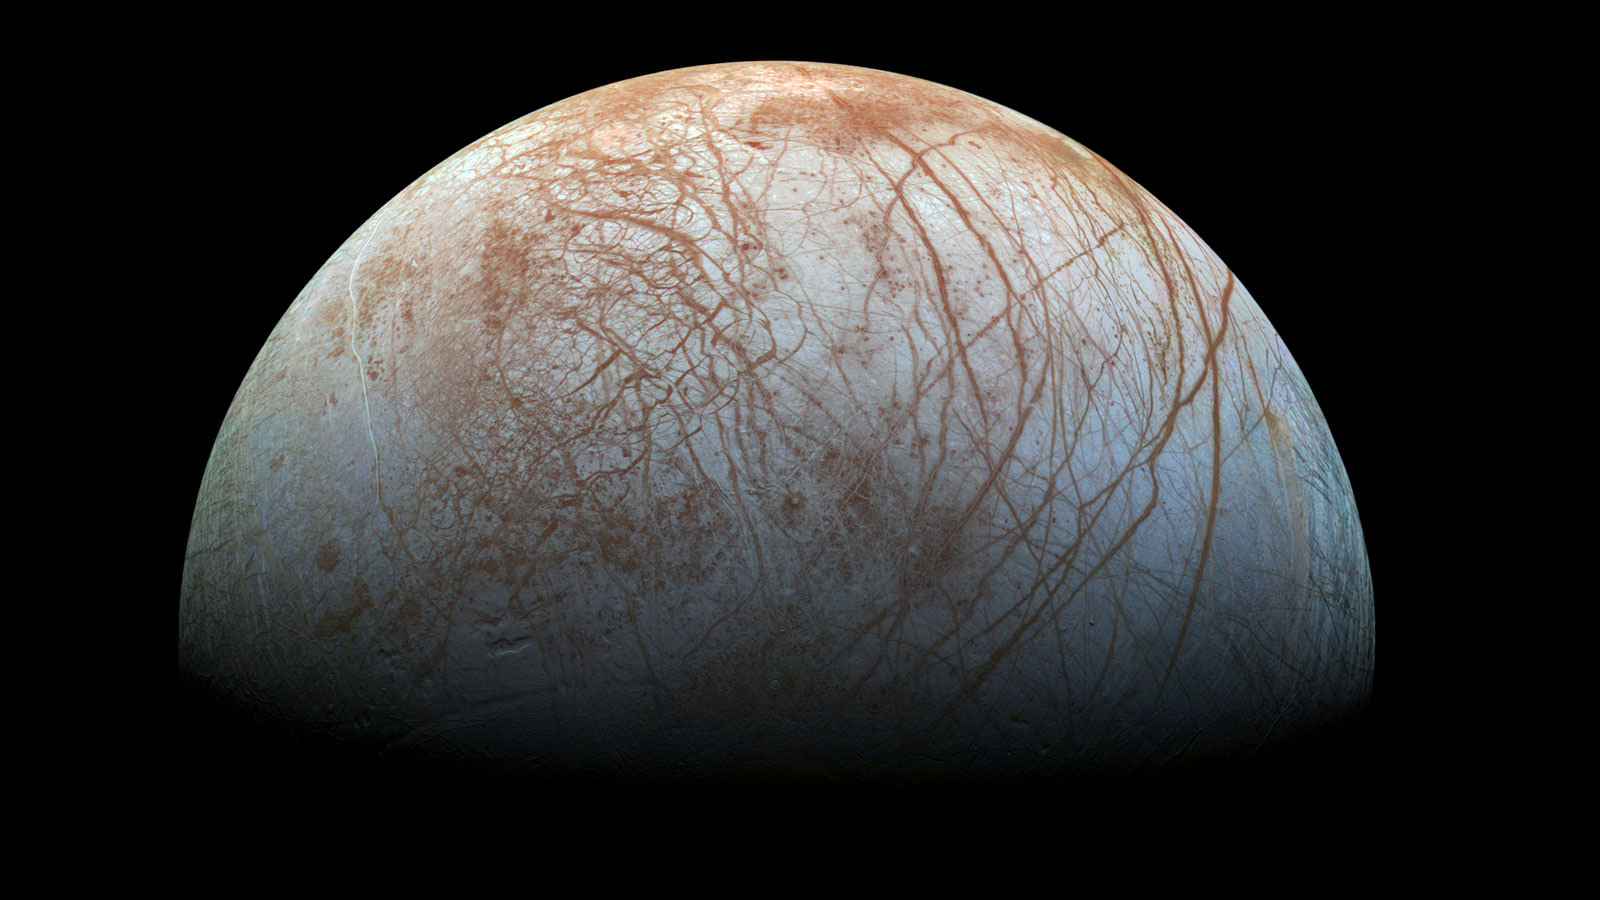 The fascinating surface of Jupiter's icy moon Europa looms large in this newly-reprocessed color view, made from images taken by NASA's Galileo spacecraft in the late 1990s. This is the color view of Europa from Galileo that shows the largest portion of the moon's surface at the highest resolution.  Credits: NASA/JPL-Caltech/SETI Institute